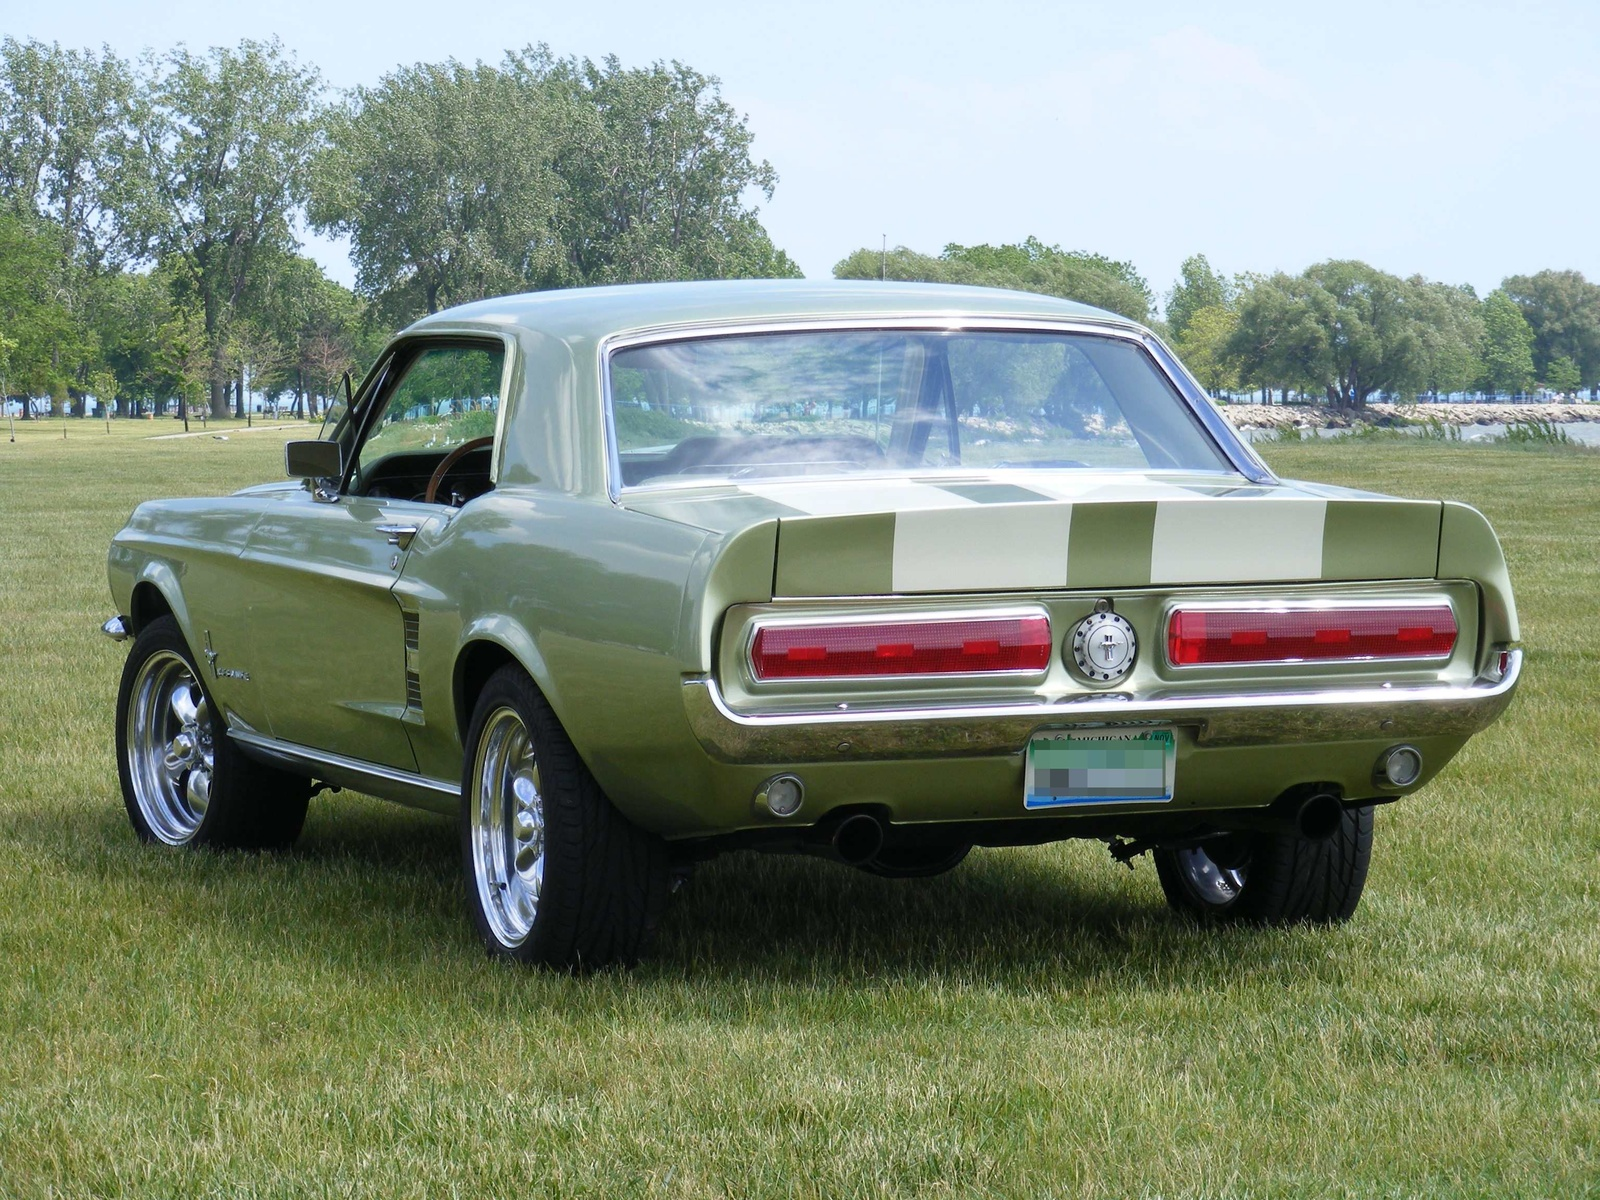 coupe pictures 1967 ford mustang coupe photos - 1967 Ford Mustang Coupe